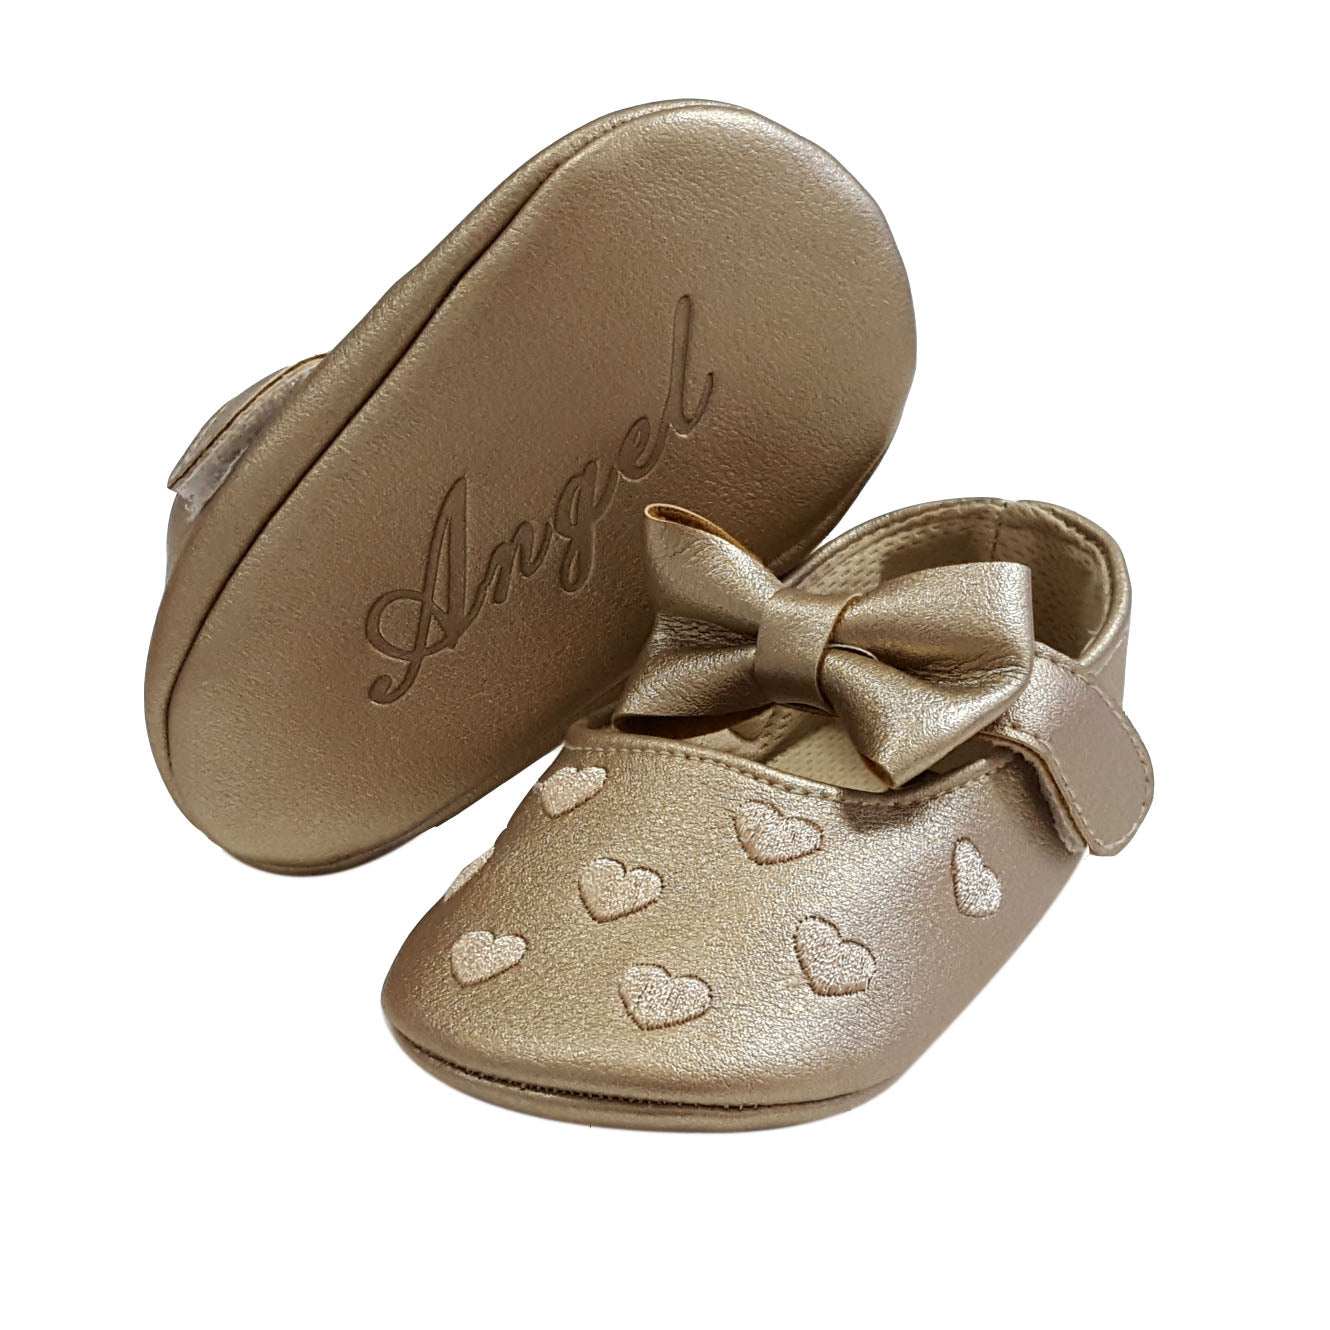 Millie (Pre-Walker Baby Shoes) - Gold Special Offer